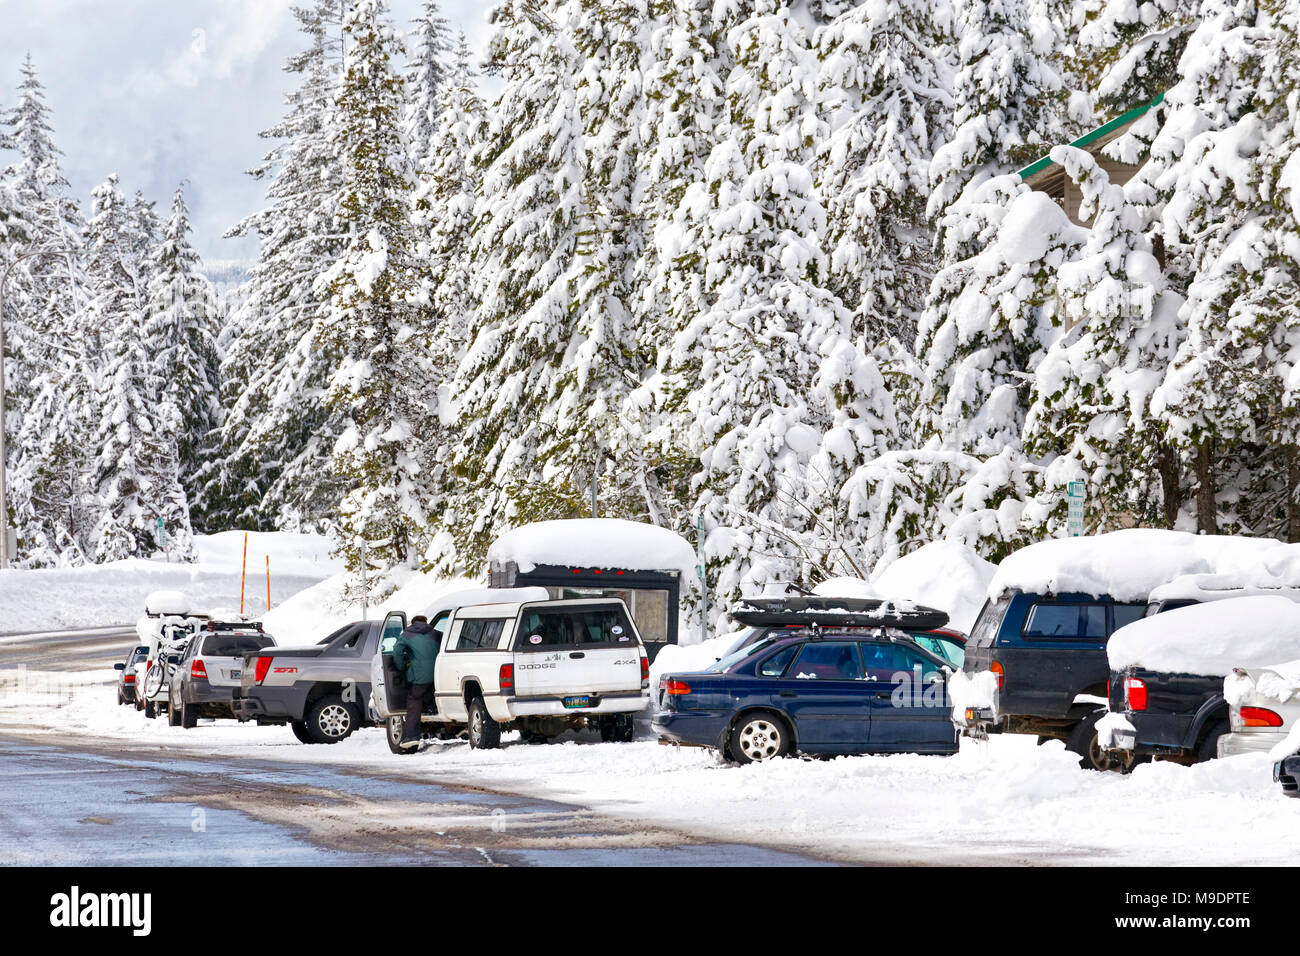 43,160.09727 winter snow-covered road, trees & parked vehicles - Stock Image